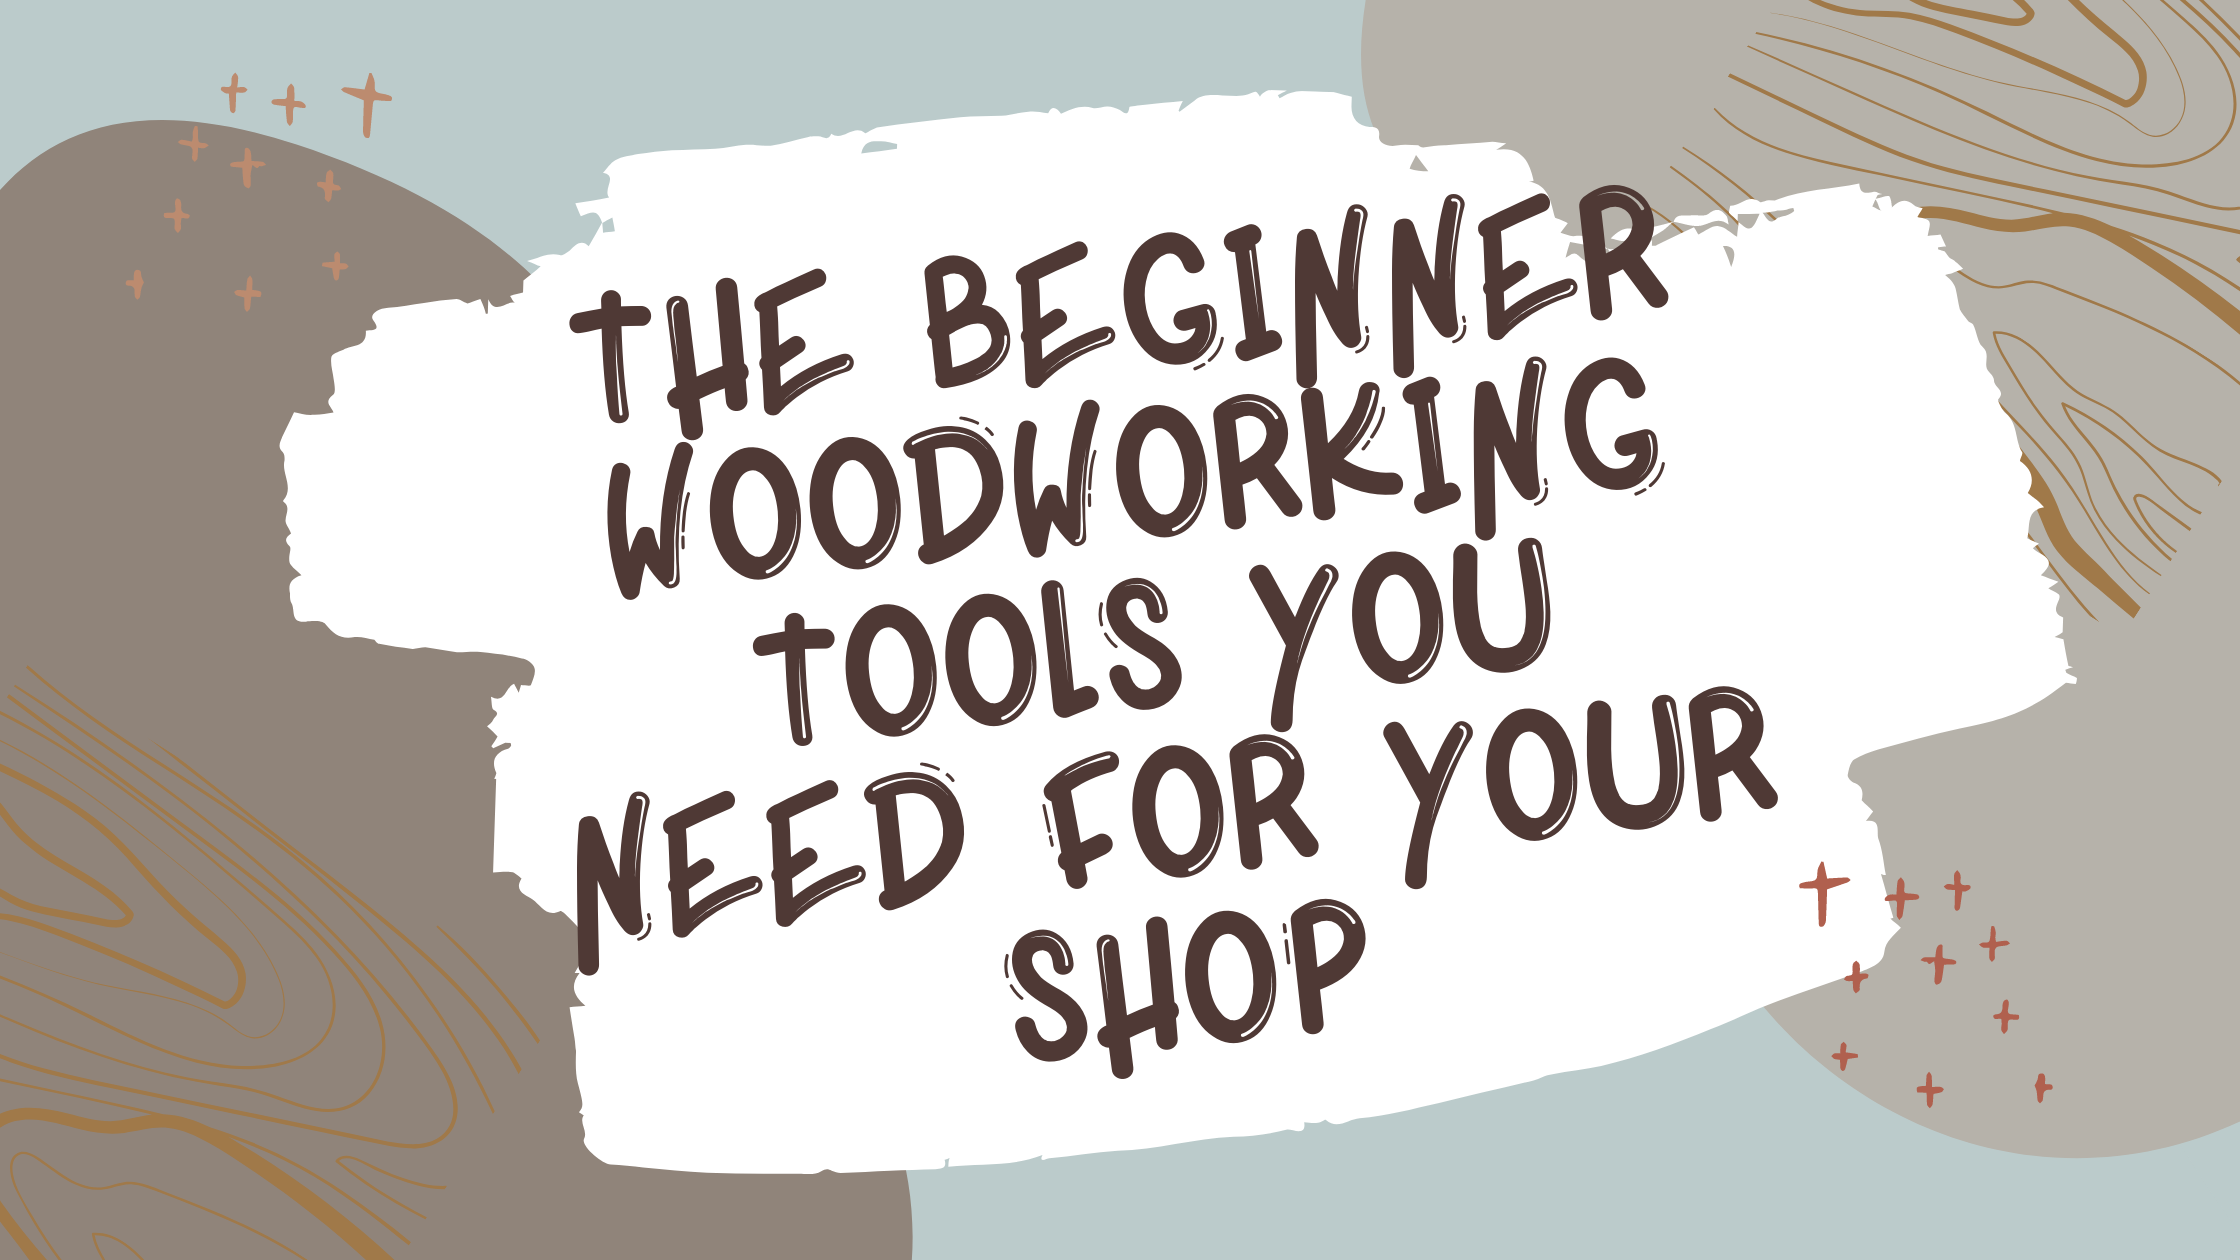 Best Beginner Woodworking Tools